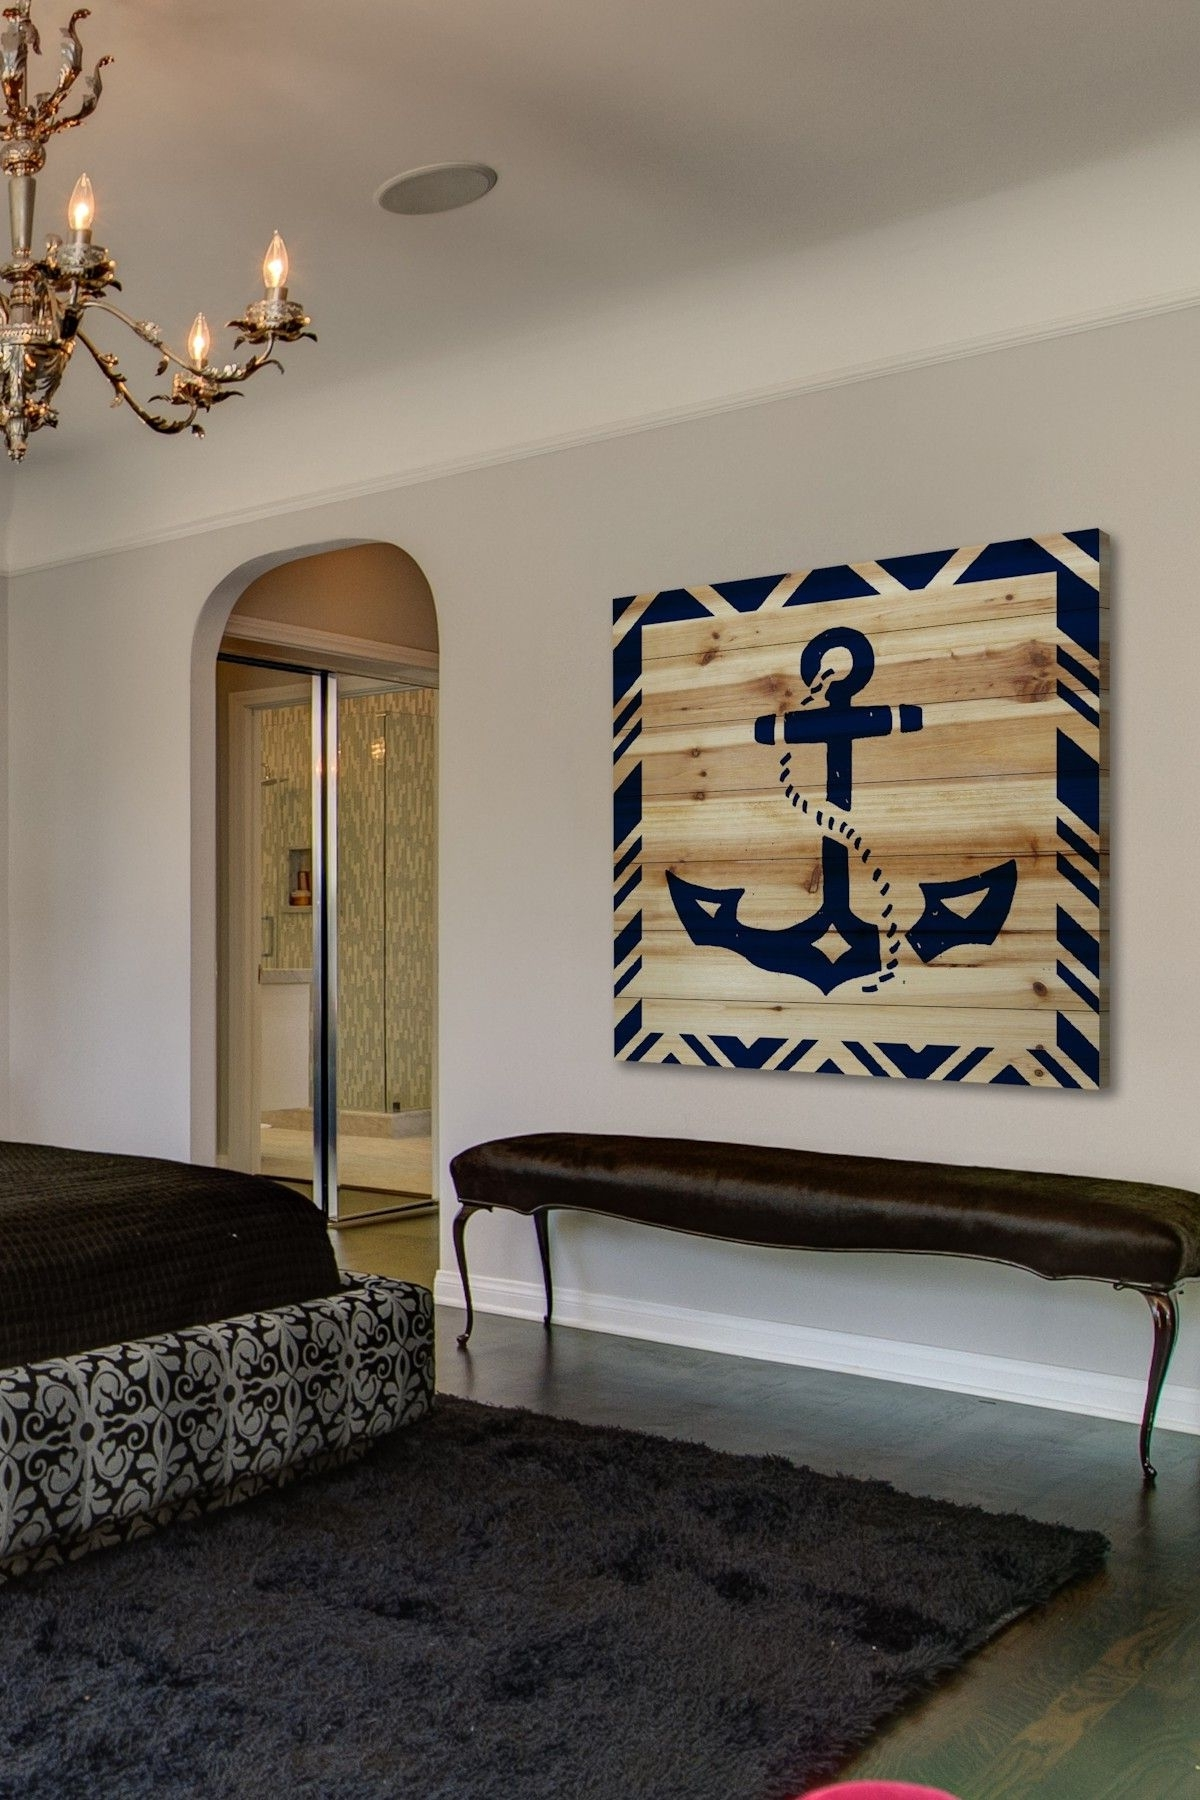 Diy Idea For A Large Nautical Wall Decor Piece. Anchor Painted On throughout 2018 Nautical Wall Art